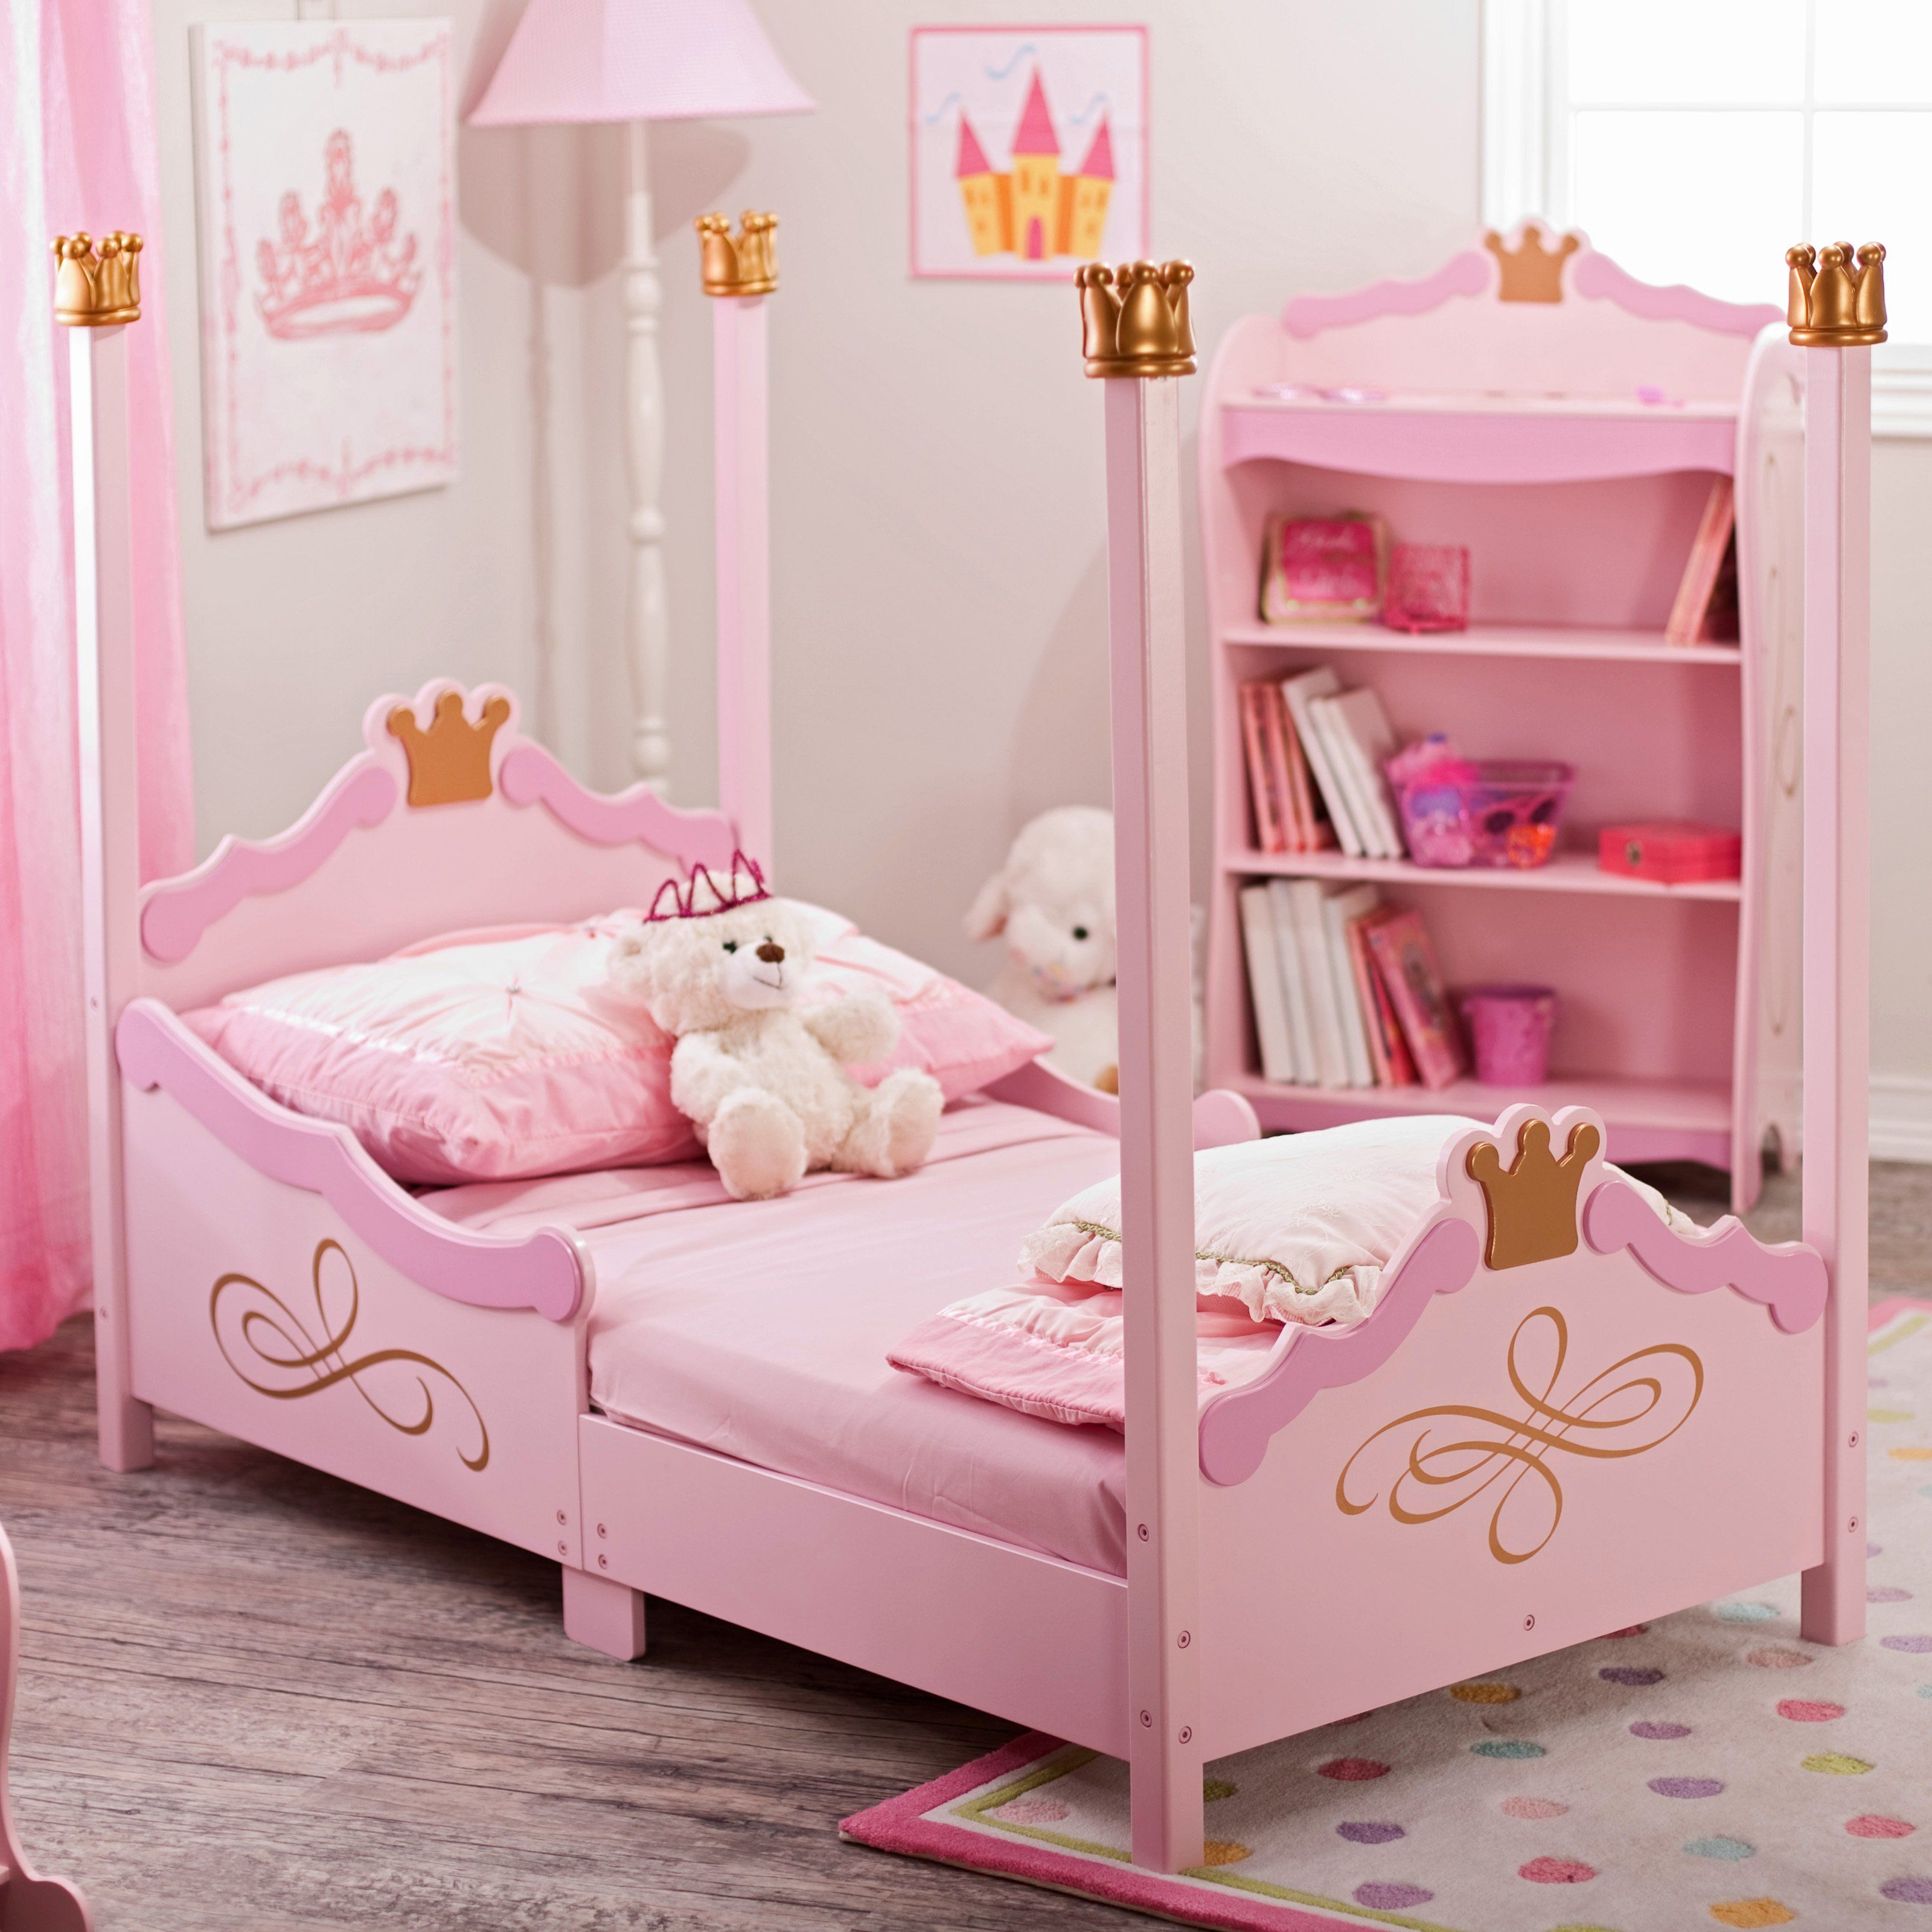 Have To It Kidkraft Princess Toddler Bed Pink 122 01 From Little Girls BedsLittle Beds